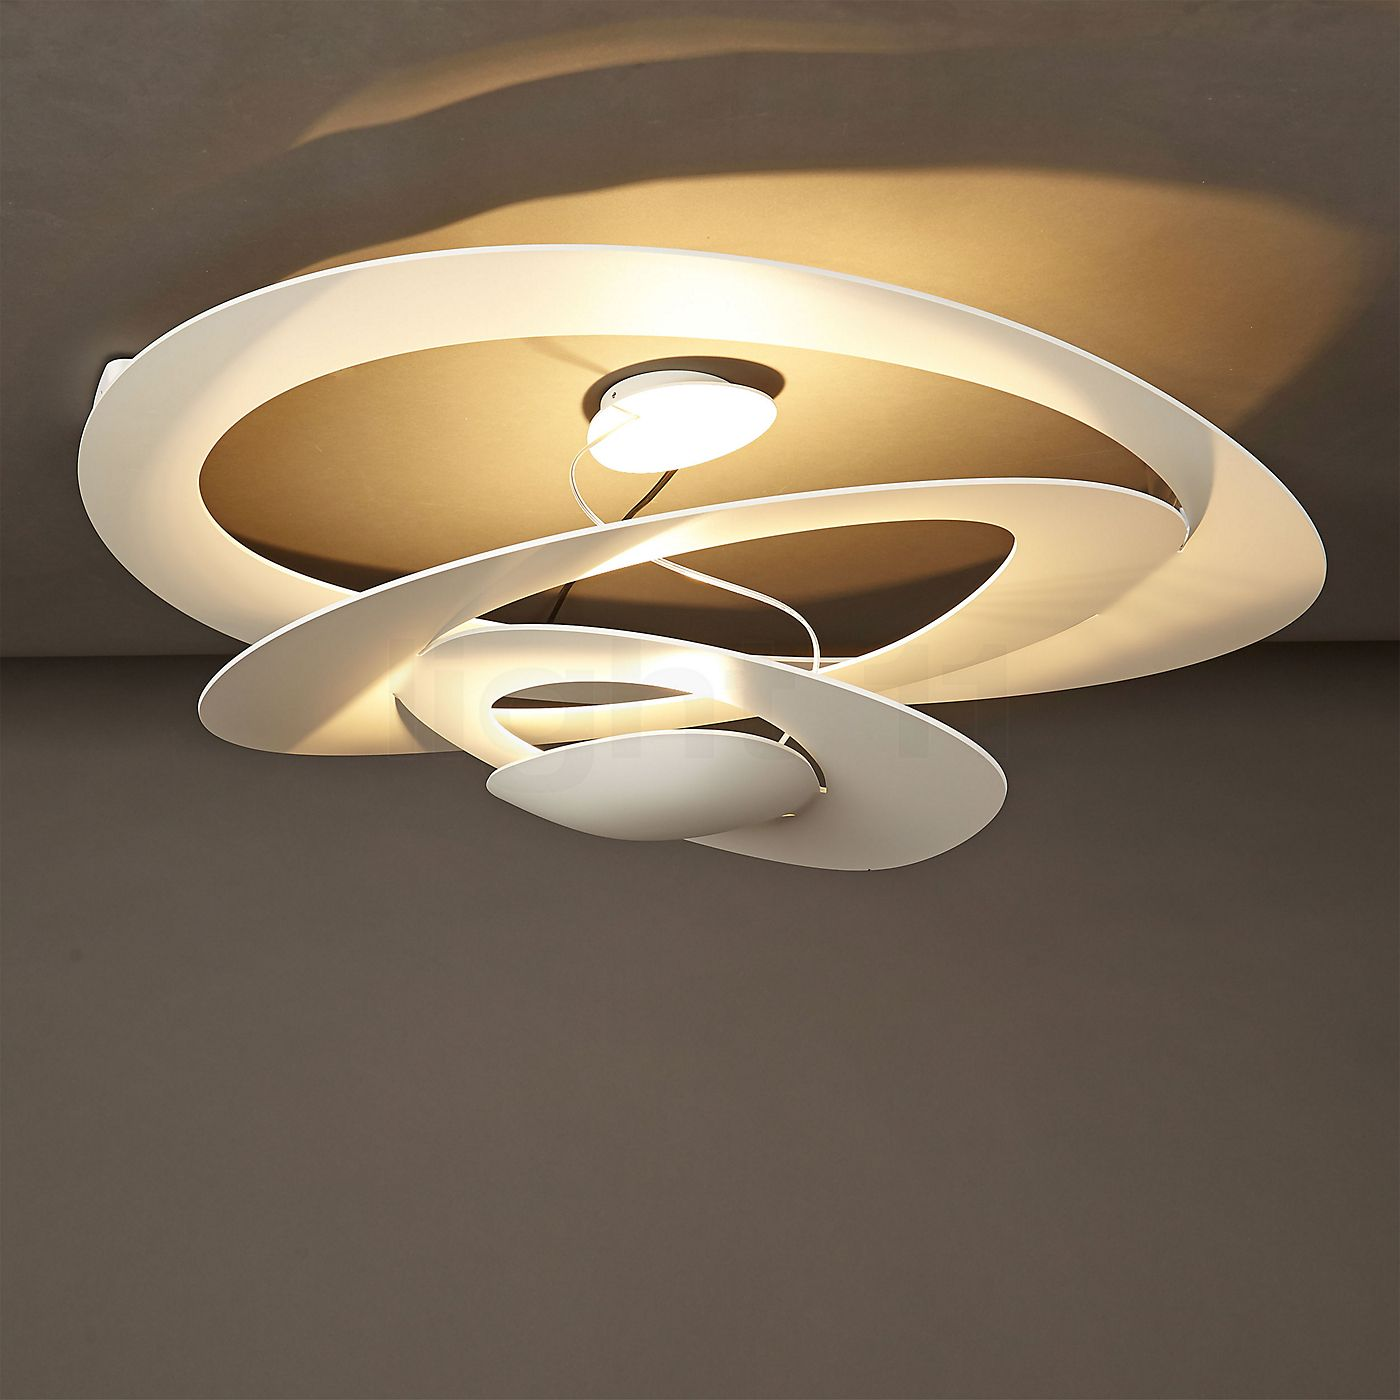 Led Deckenaufbauleuchten Artemide Pirce Soffitto Led | Lights | Ceiling Lights